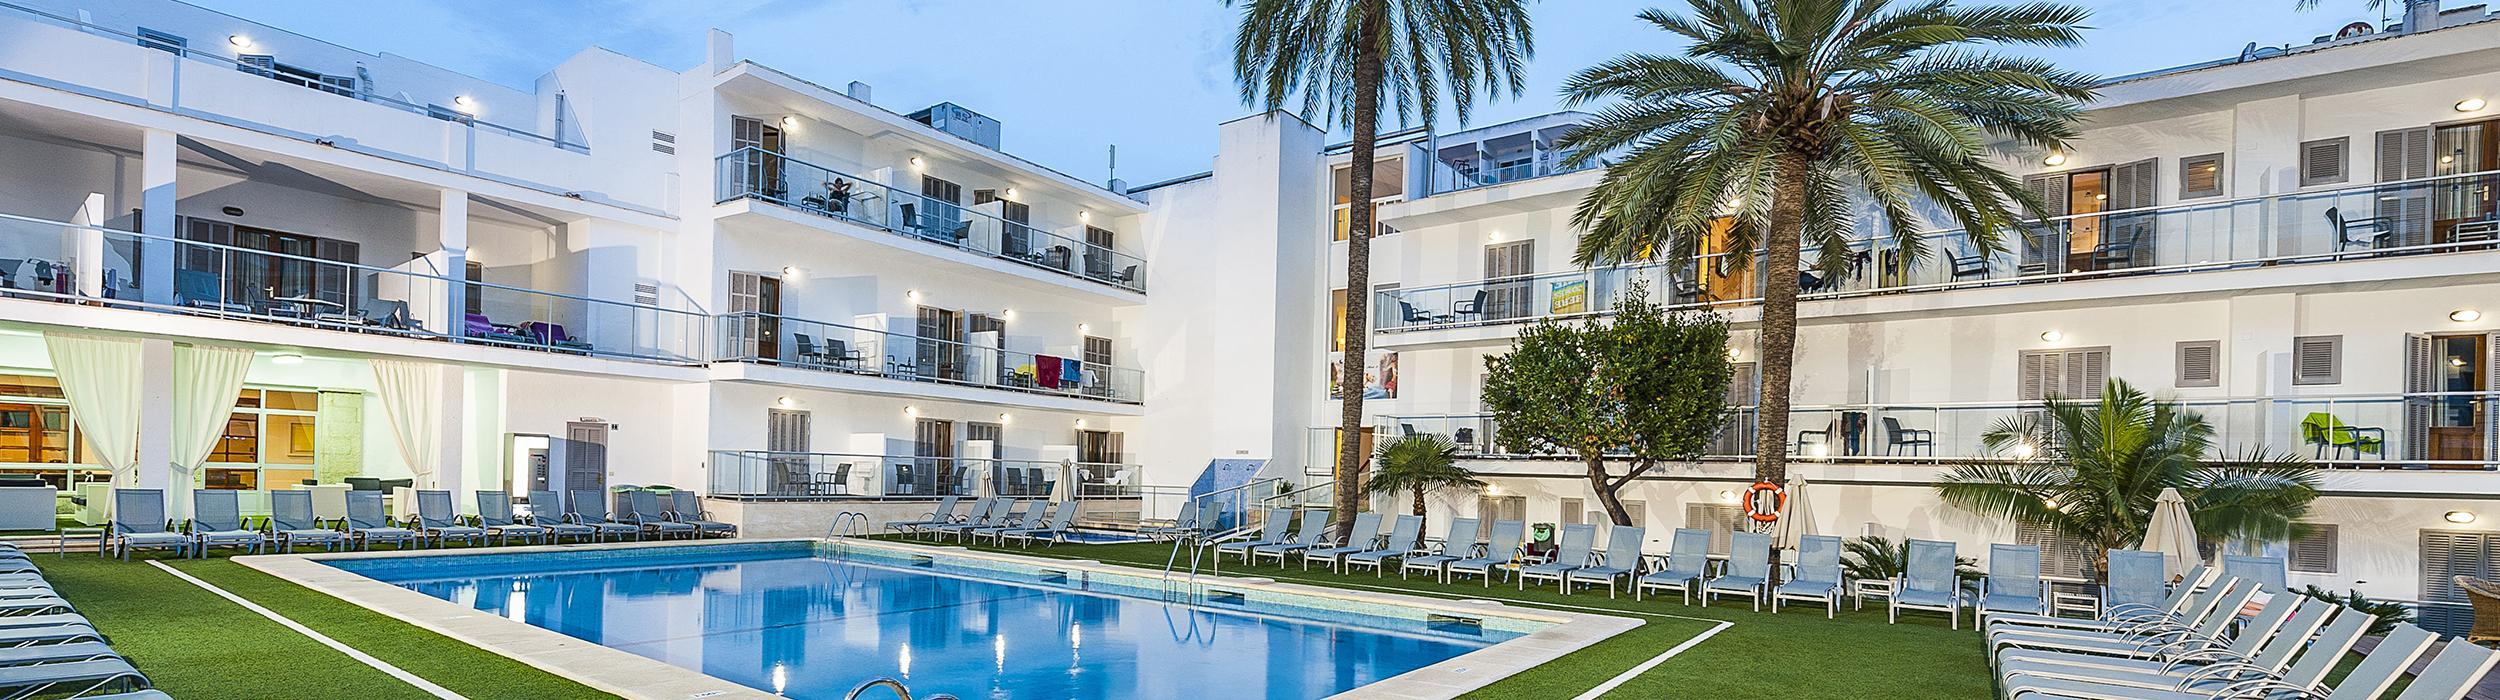 Majorca – Amazing Adults Only Holiday Package EIX ALCUDIA